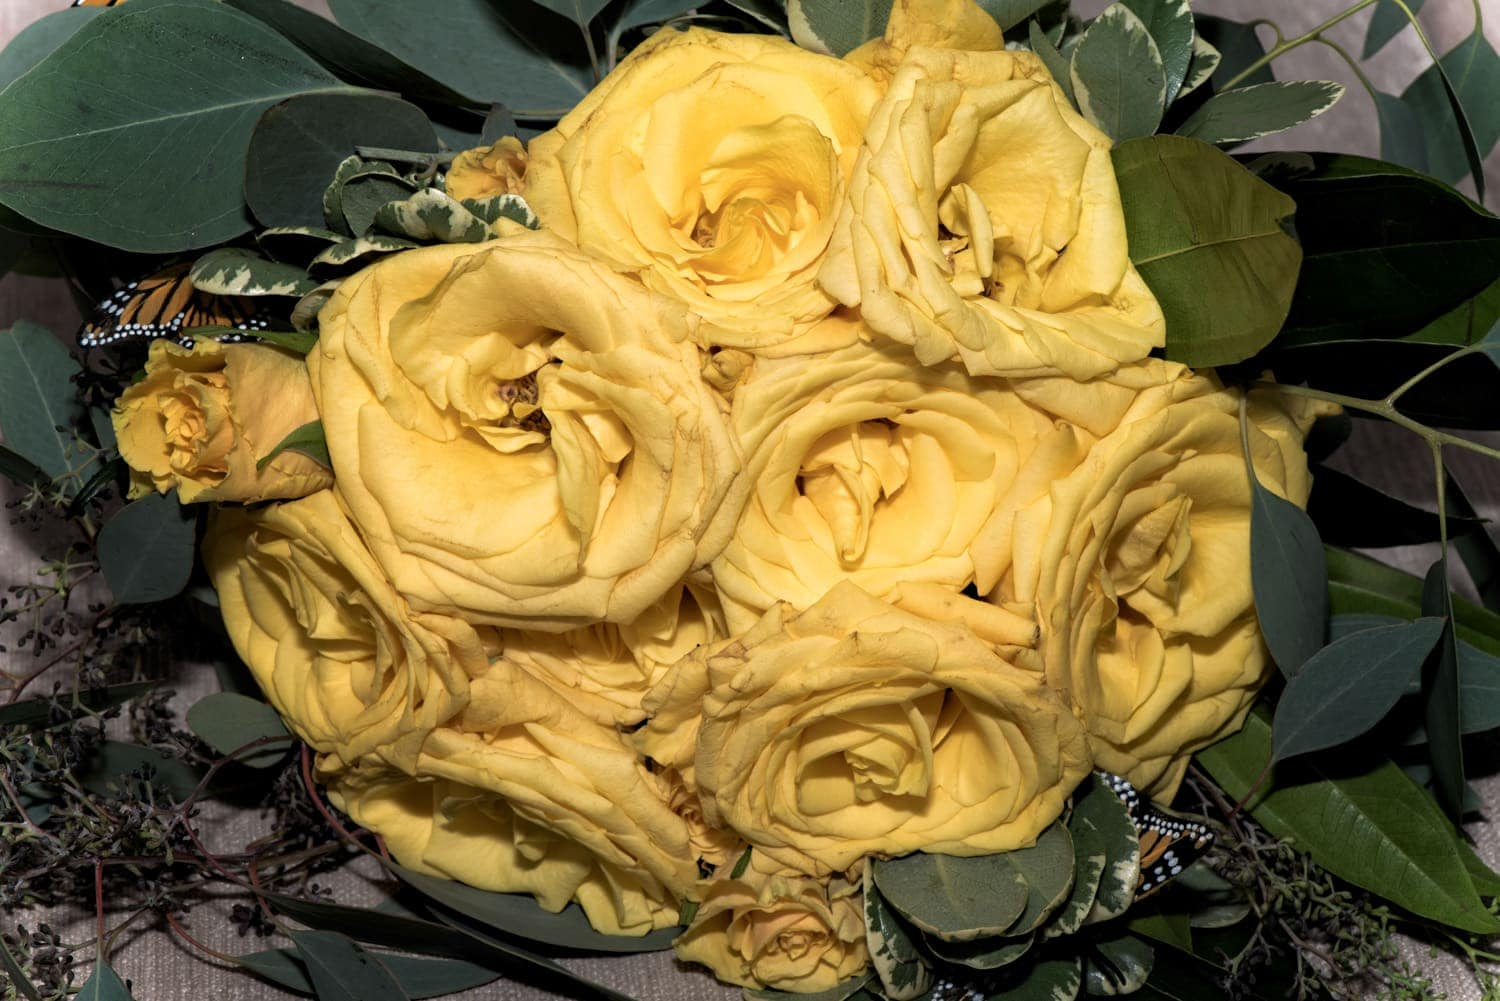 A wedding bridal bouquet with yellow roses and accented with butterflies.